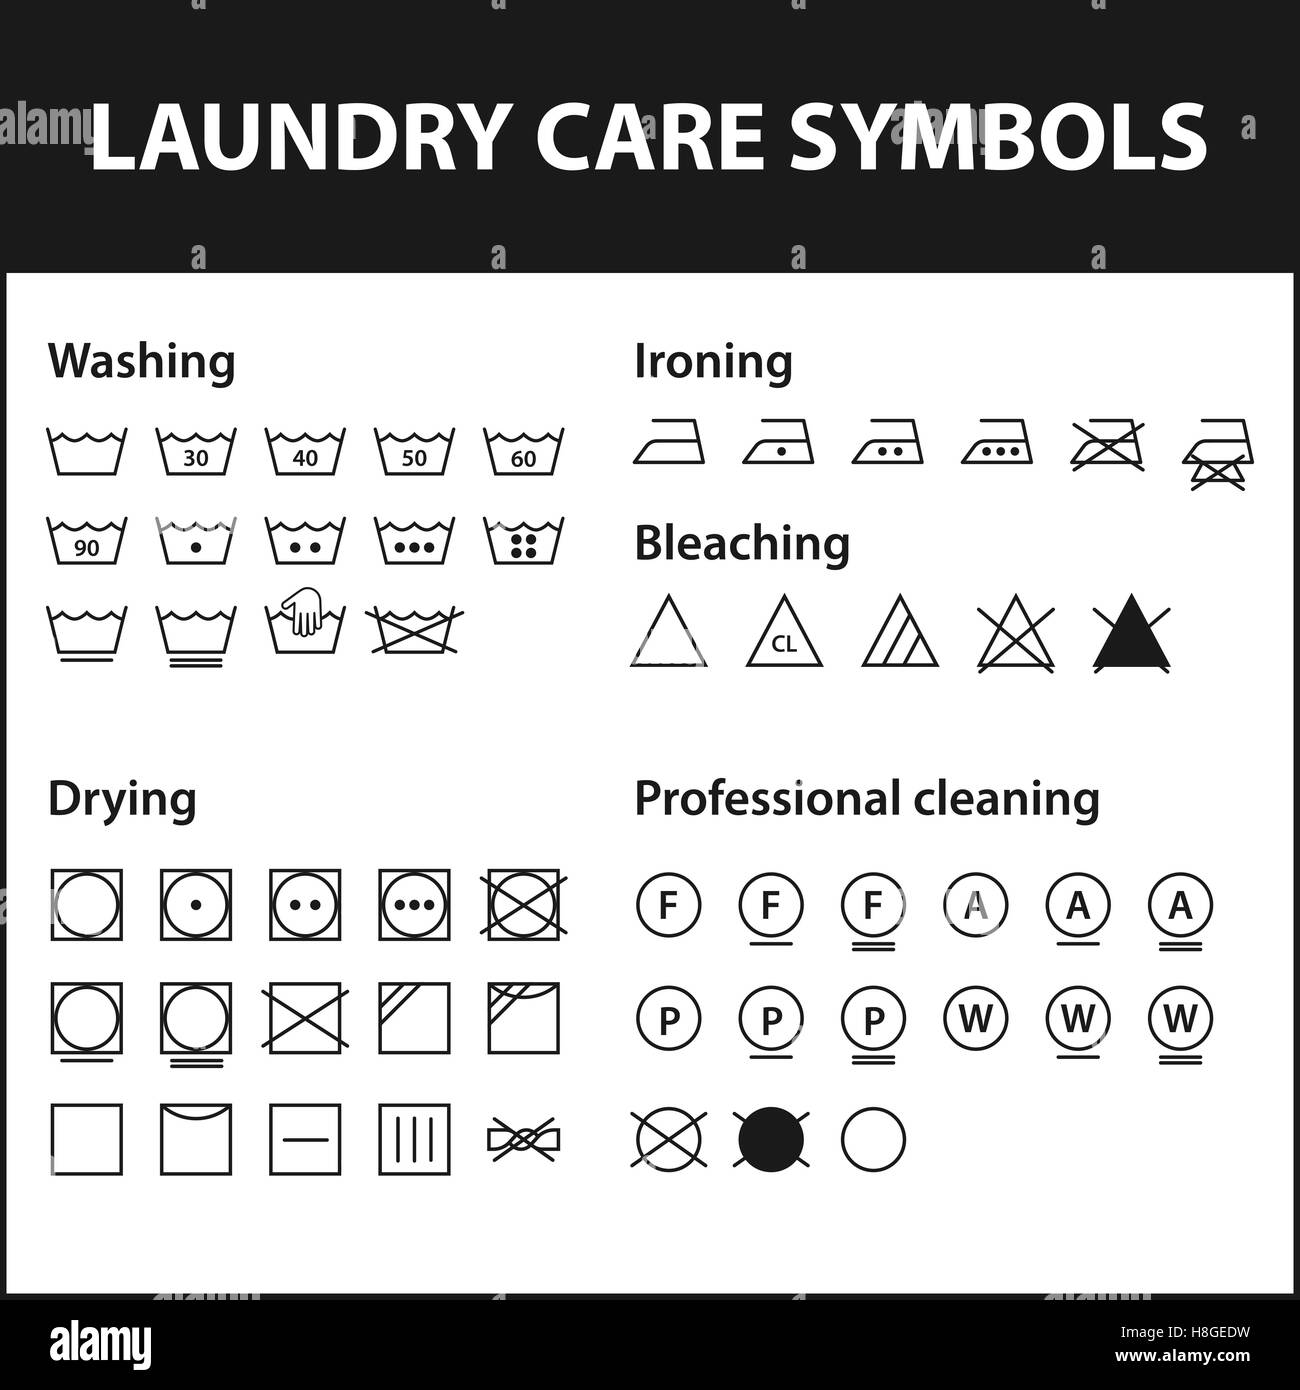 Chlorine water element stock photos chlorine water element stock icon set of laundry symbols washing instruction symbols cloth textile care signs collection urtaz